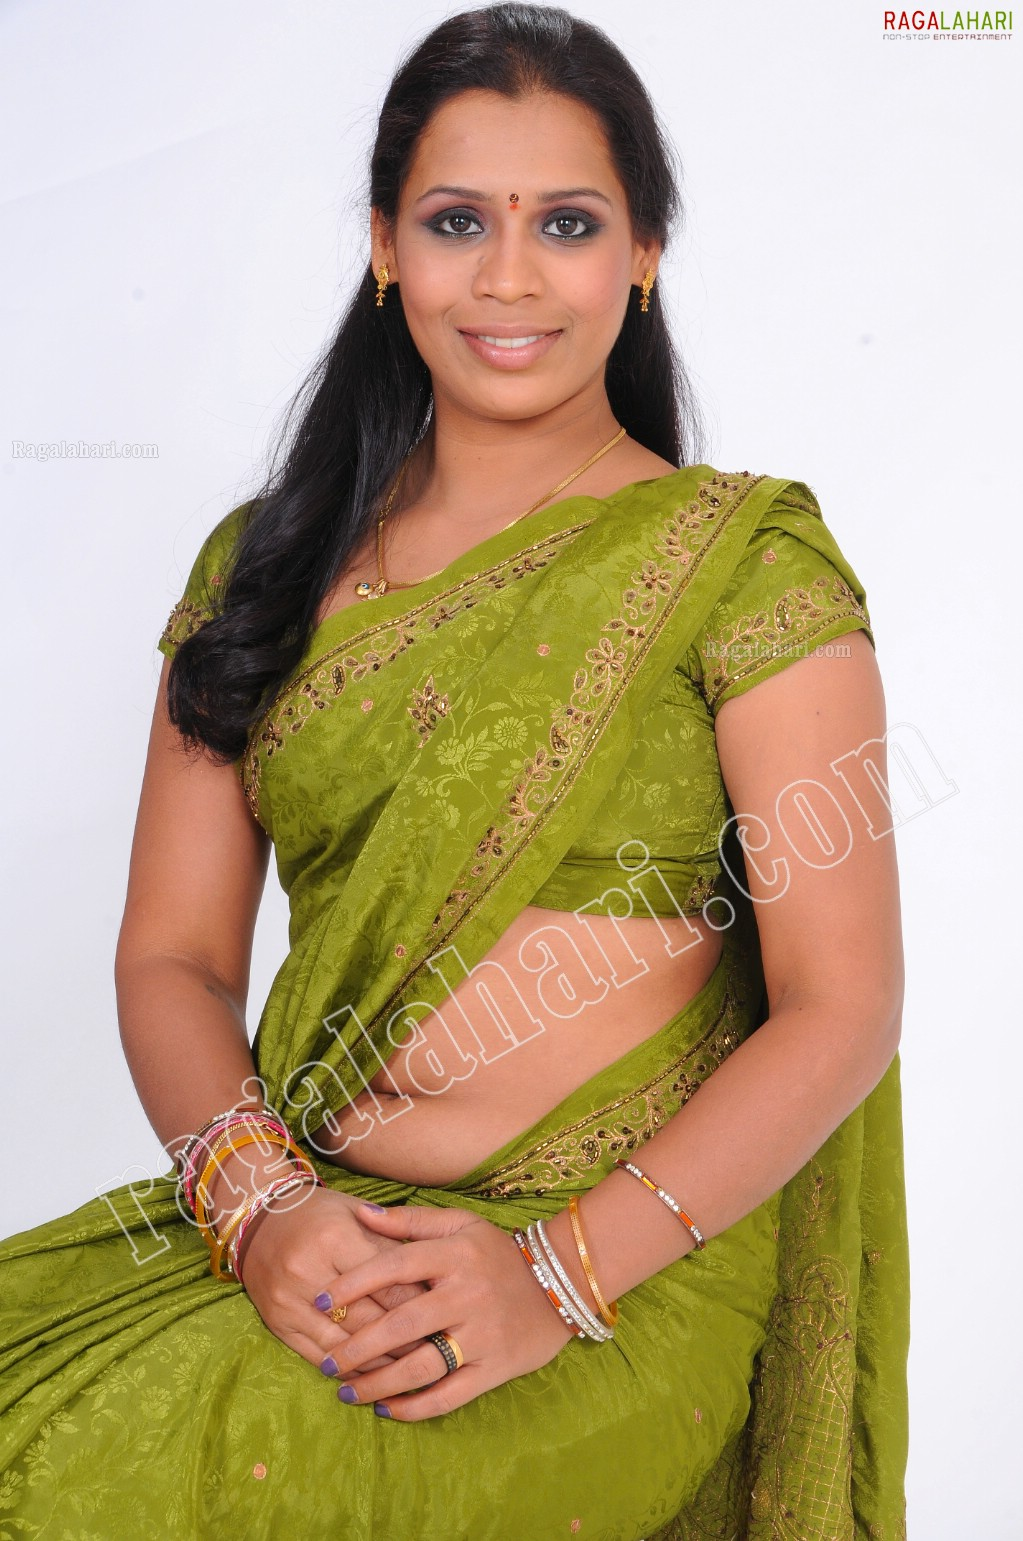 desi navel pictures